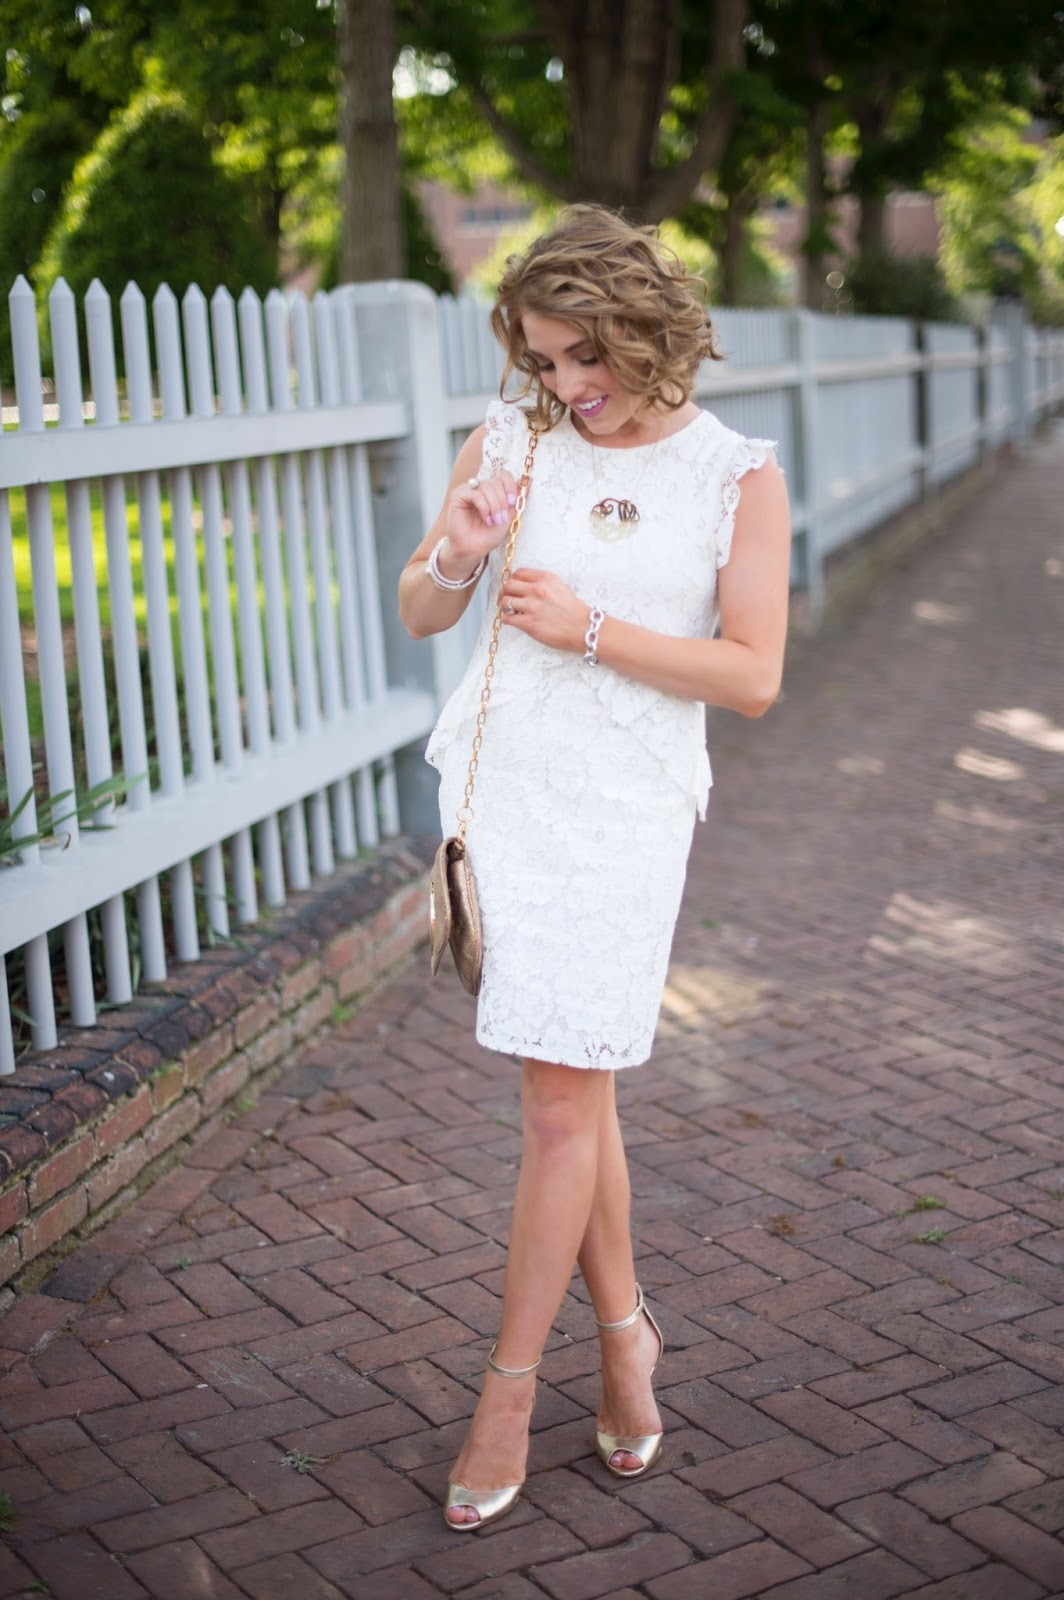 Ivory Lace Dress - Click through to see more on Something Delightful Blog.